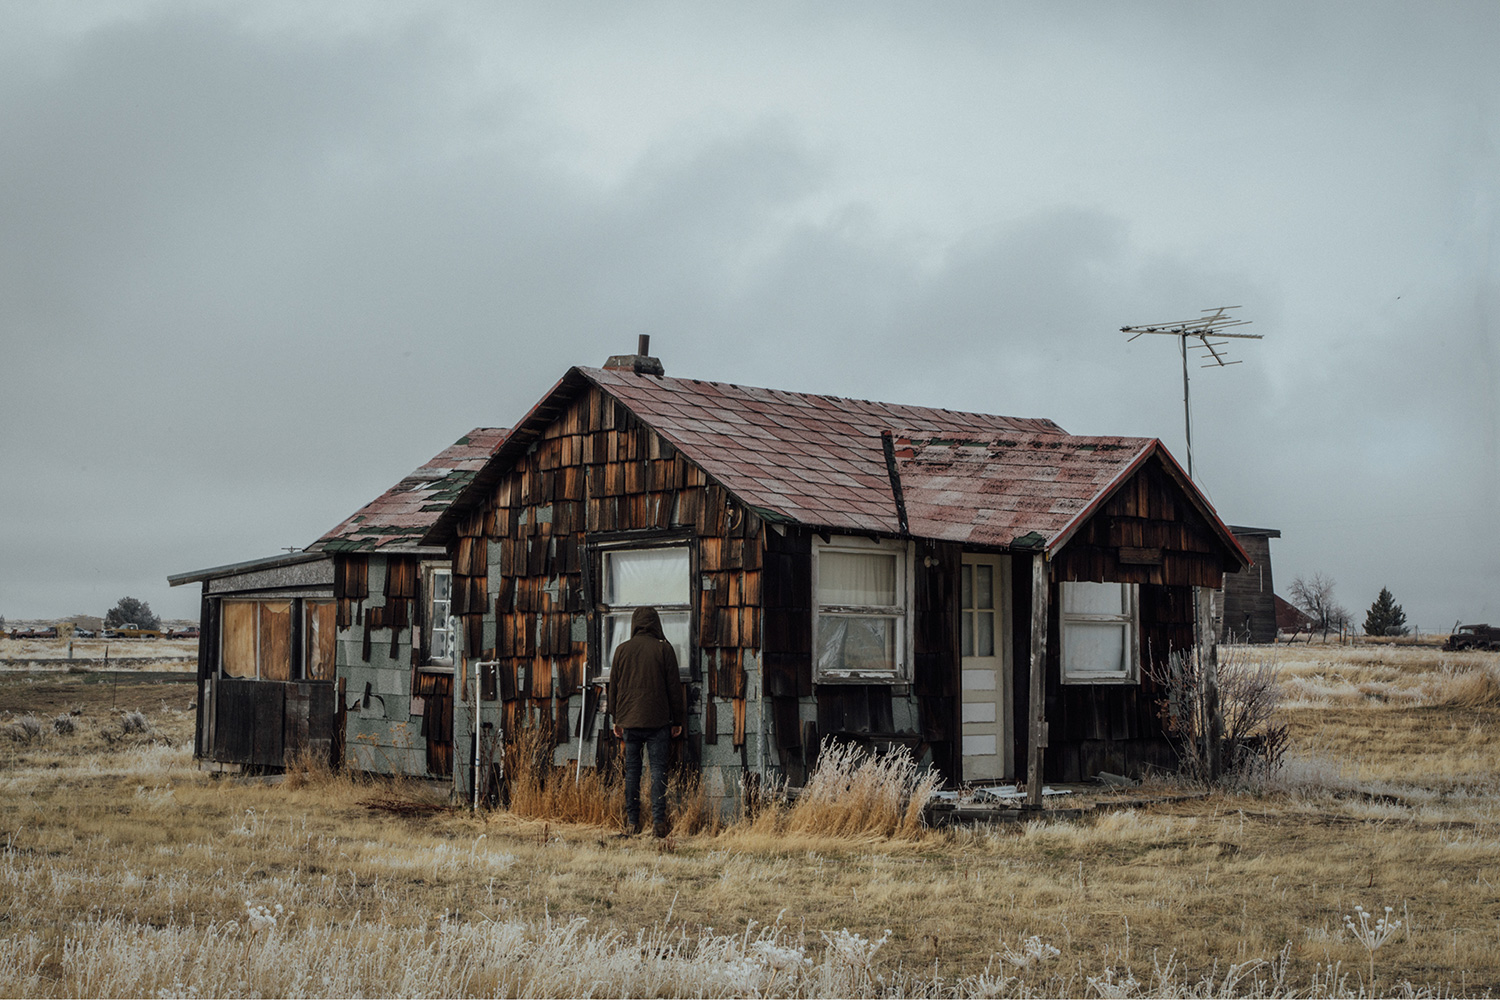 Brendon Burton, Western Gothic - man looking into abandoned house